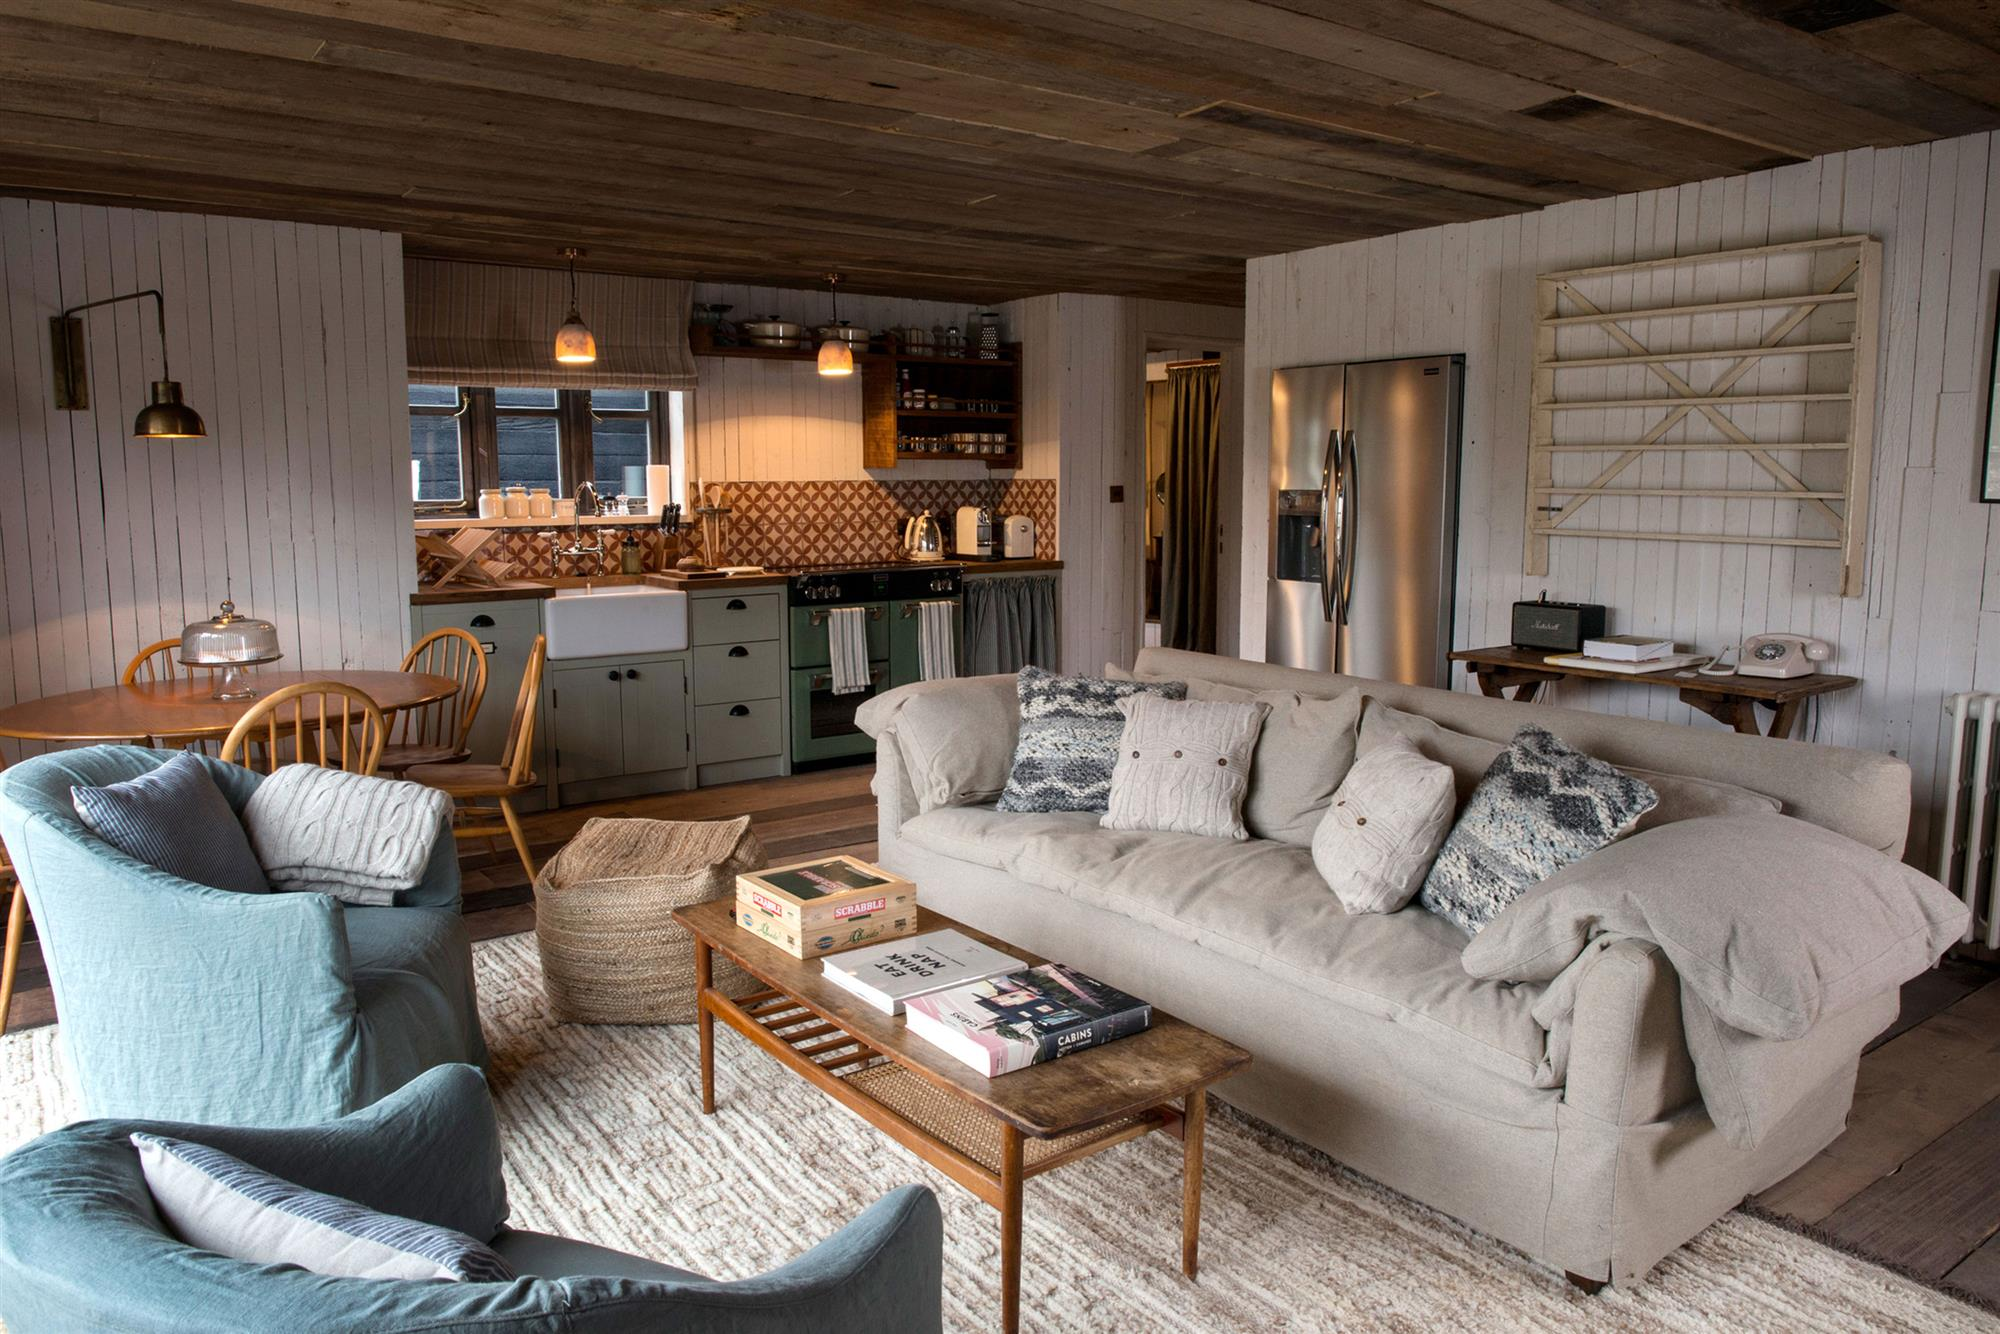 Soho Farm House salon. Soho Farmhouse